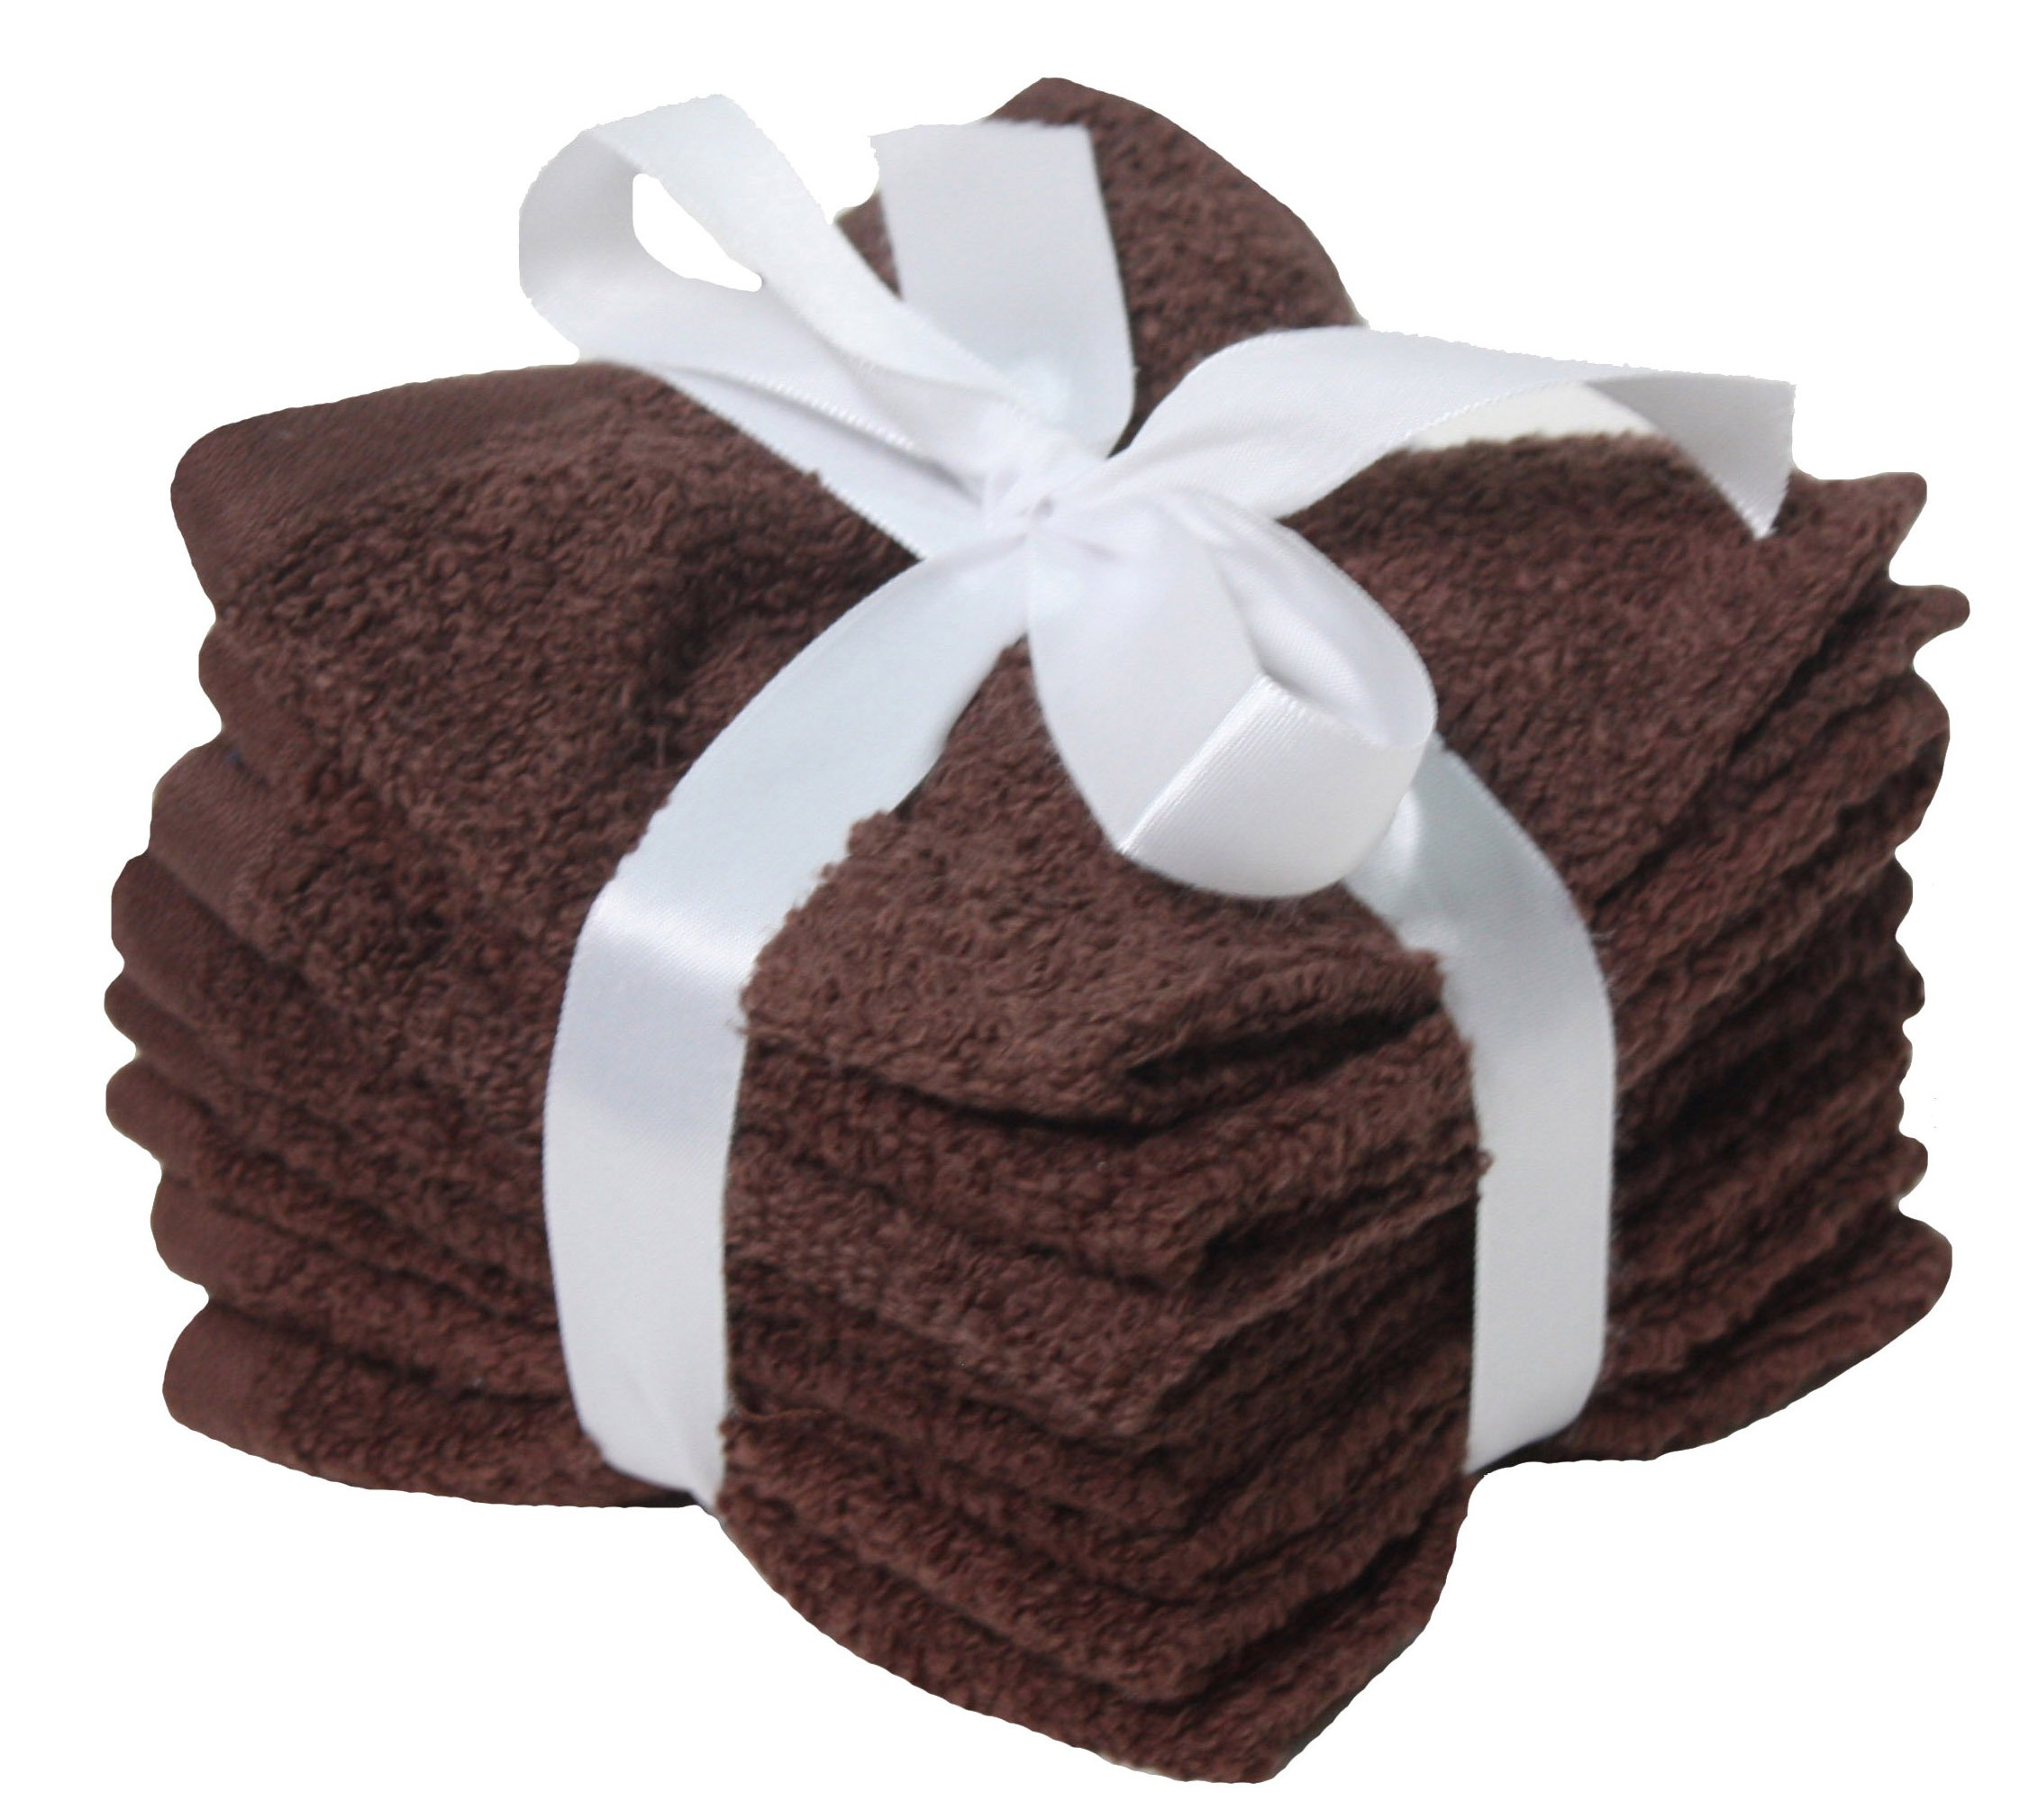 J&M Home Fashions Premium 8-Piece Cotton Washcloth Set, 12x12'', Hotel & Spa Quality, Super Soft and Ultra Absorbent Face Towels for Bathroom & Washroom-Coffee Brown